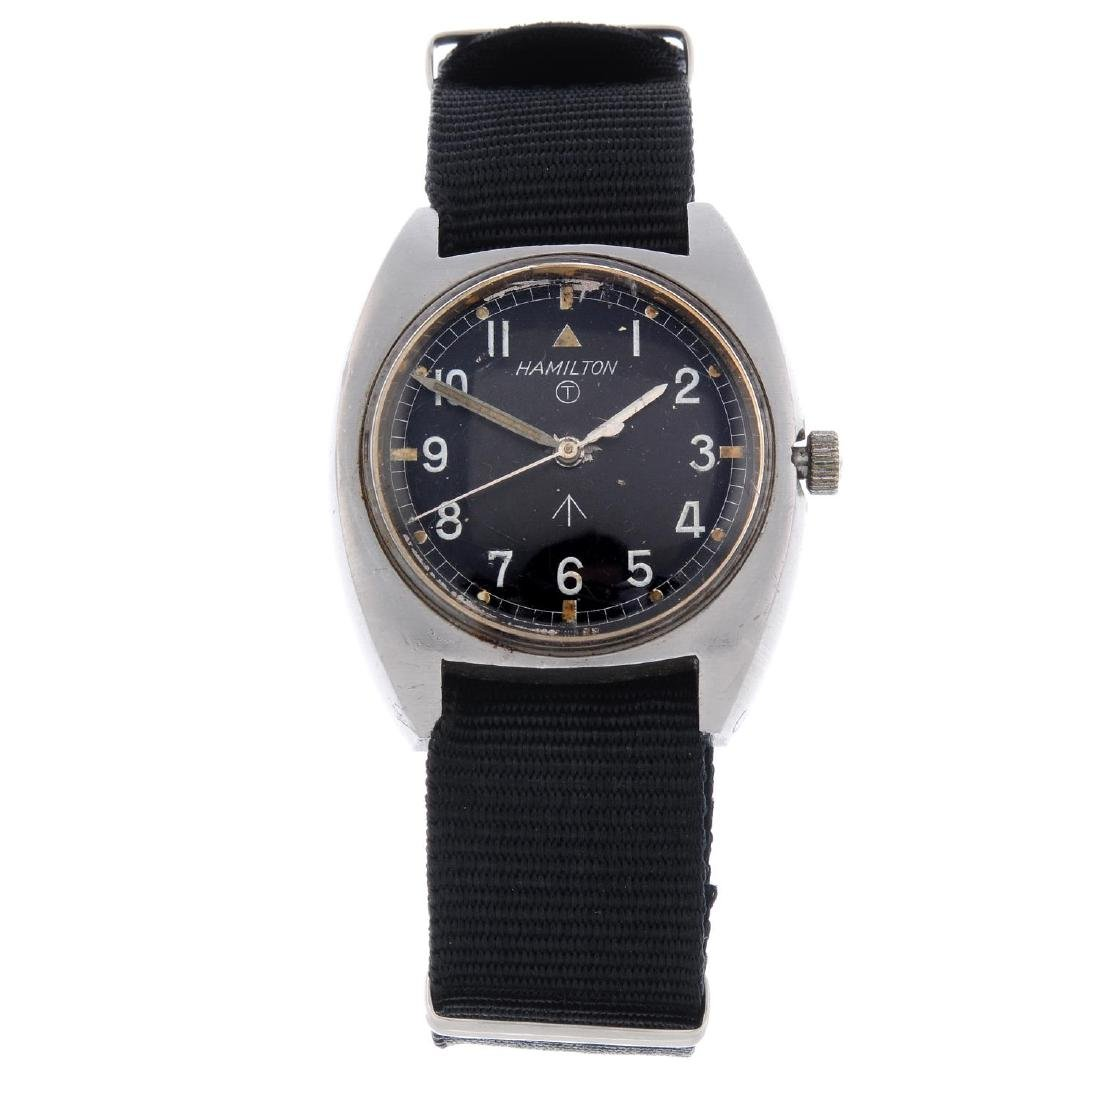 HAMILTON - a gentleman's military issue wrist watch.